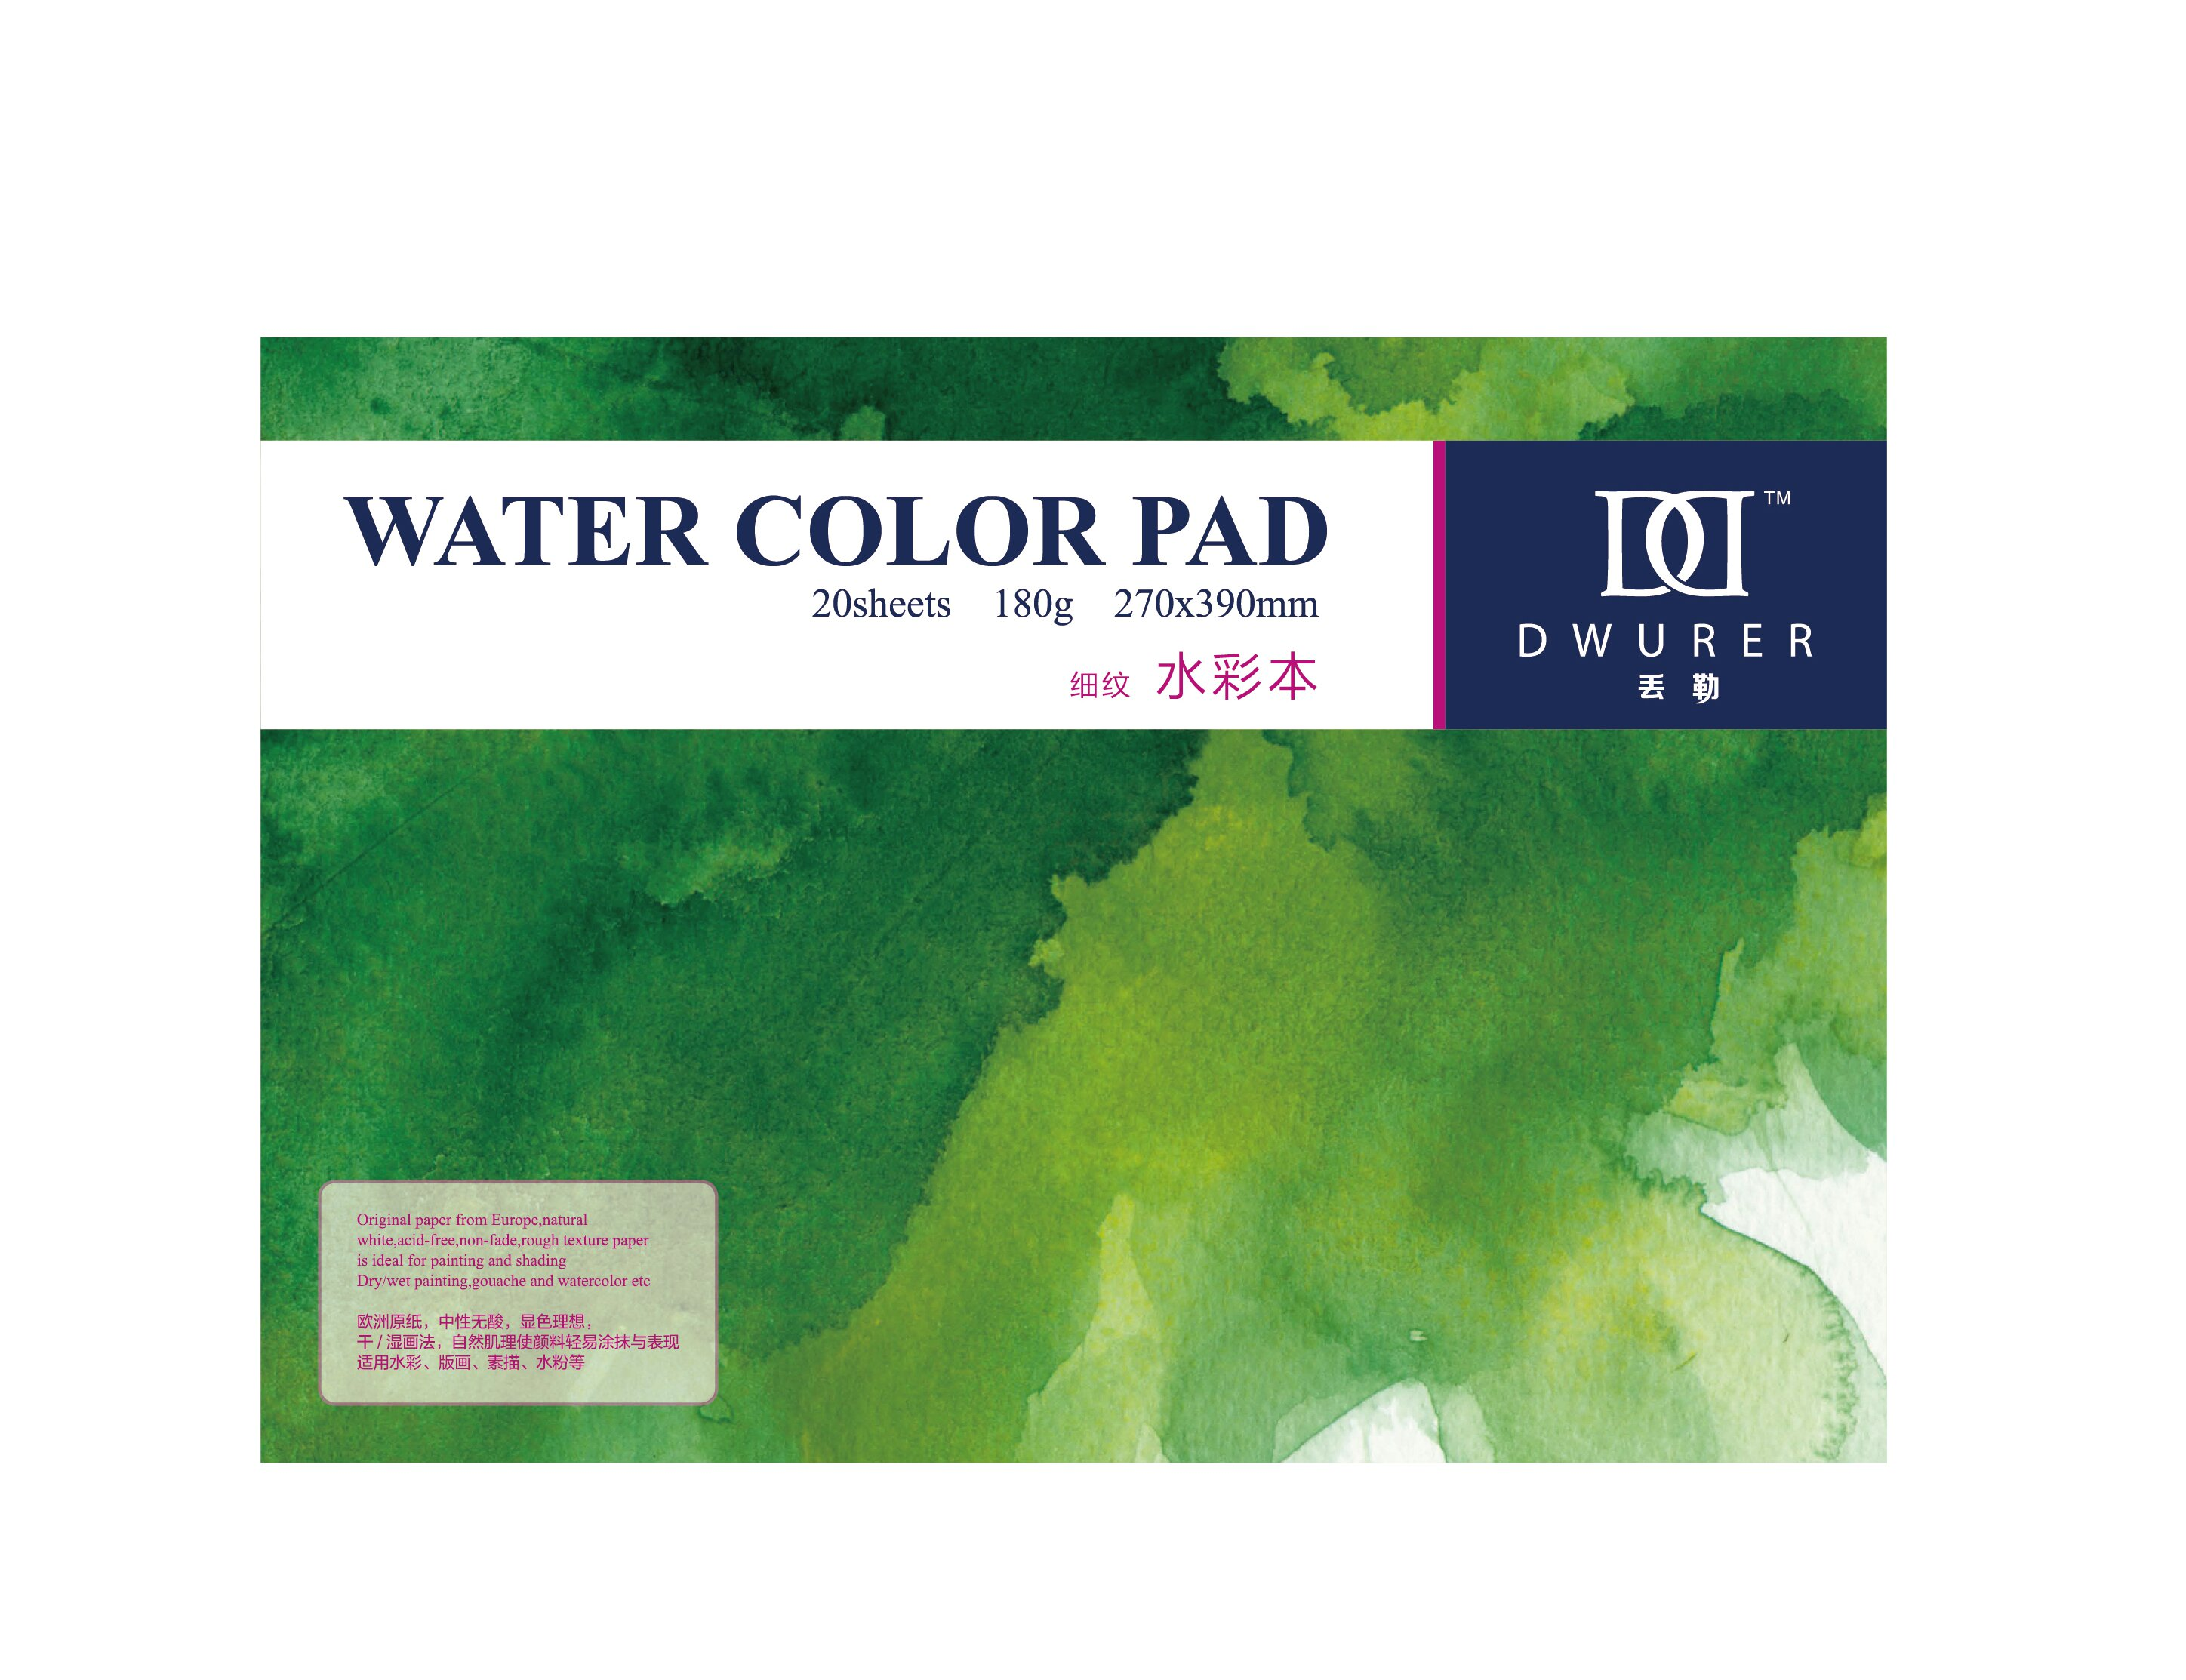 Альбом для акварели DWURER WATERCOLOR PAD 180г/кв.м 195х270мм 20л. склейка по 359.00 руб от Potentate